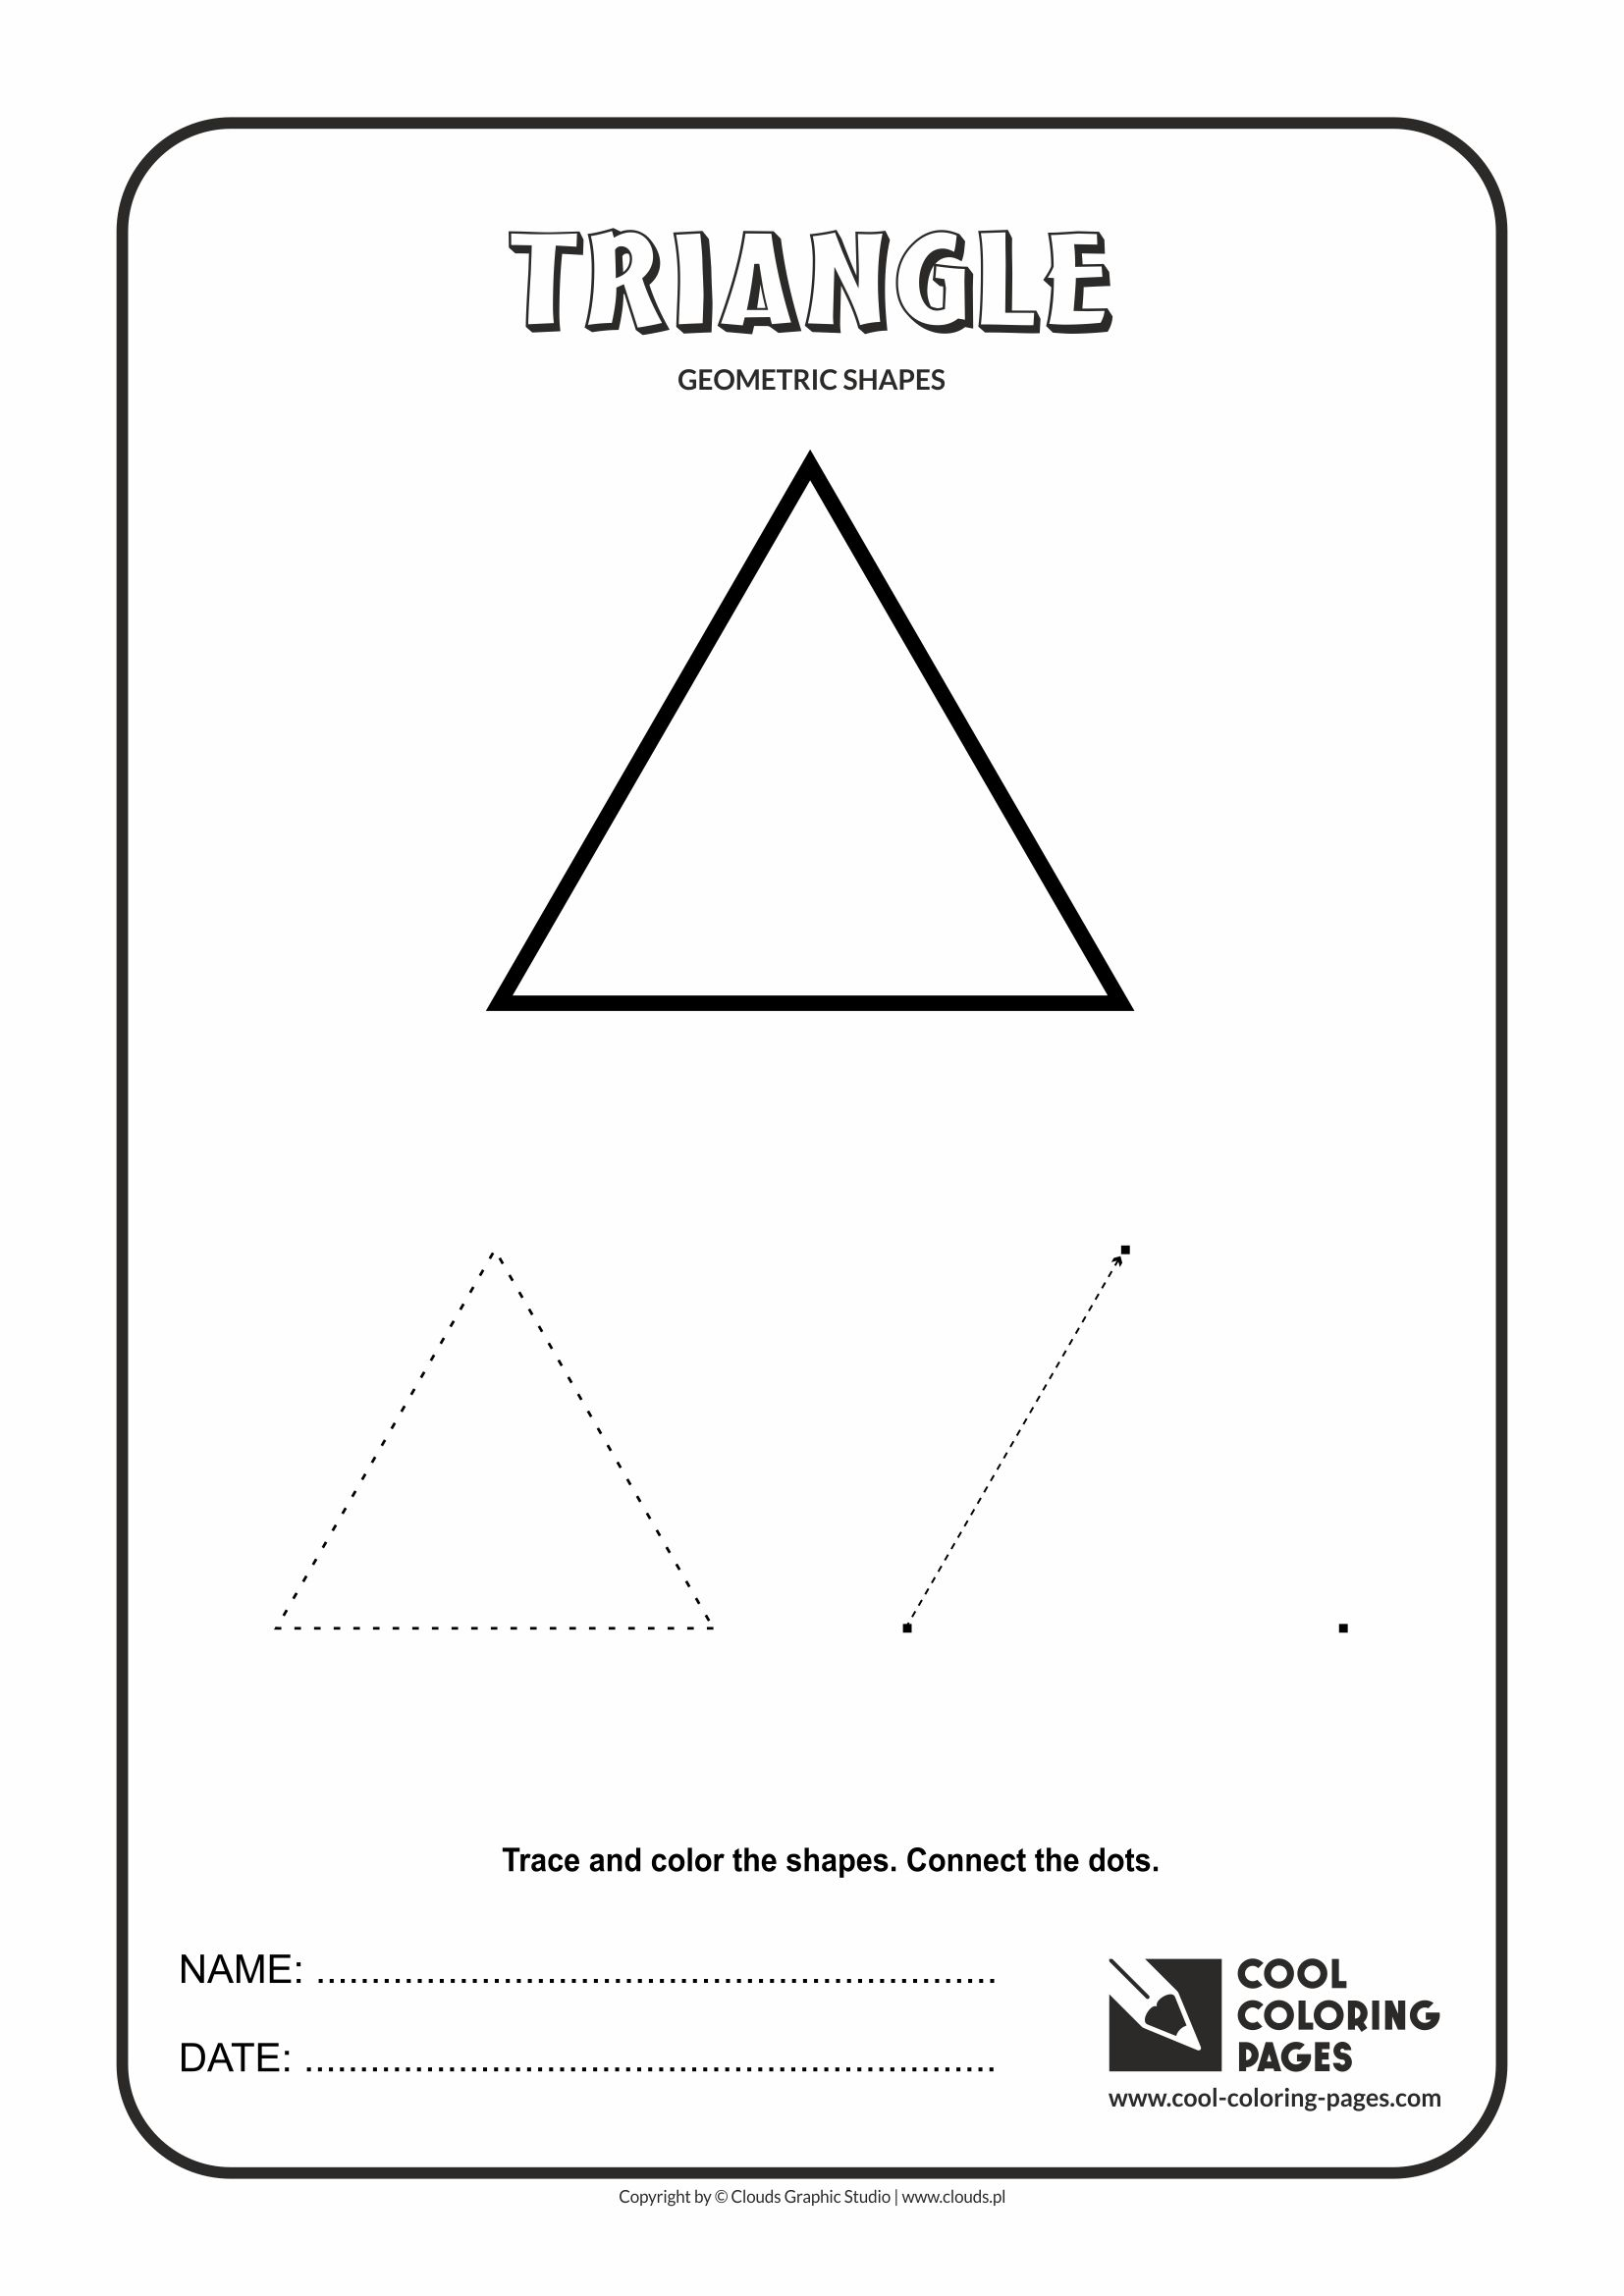 Cool Coloring Pages - Geometric shapes / Triangle